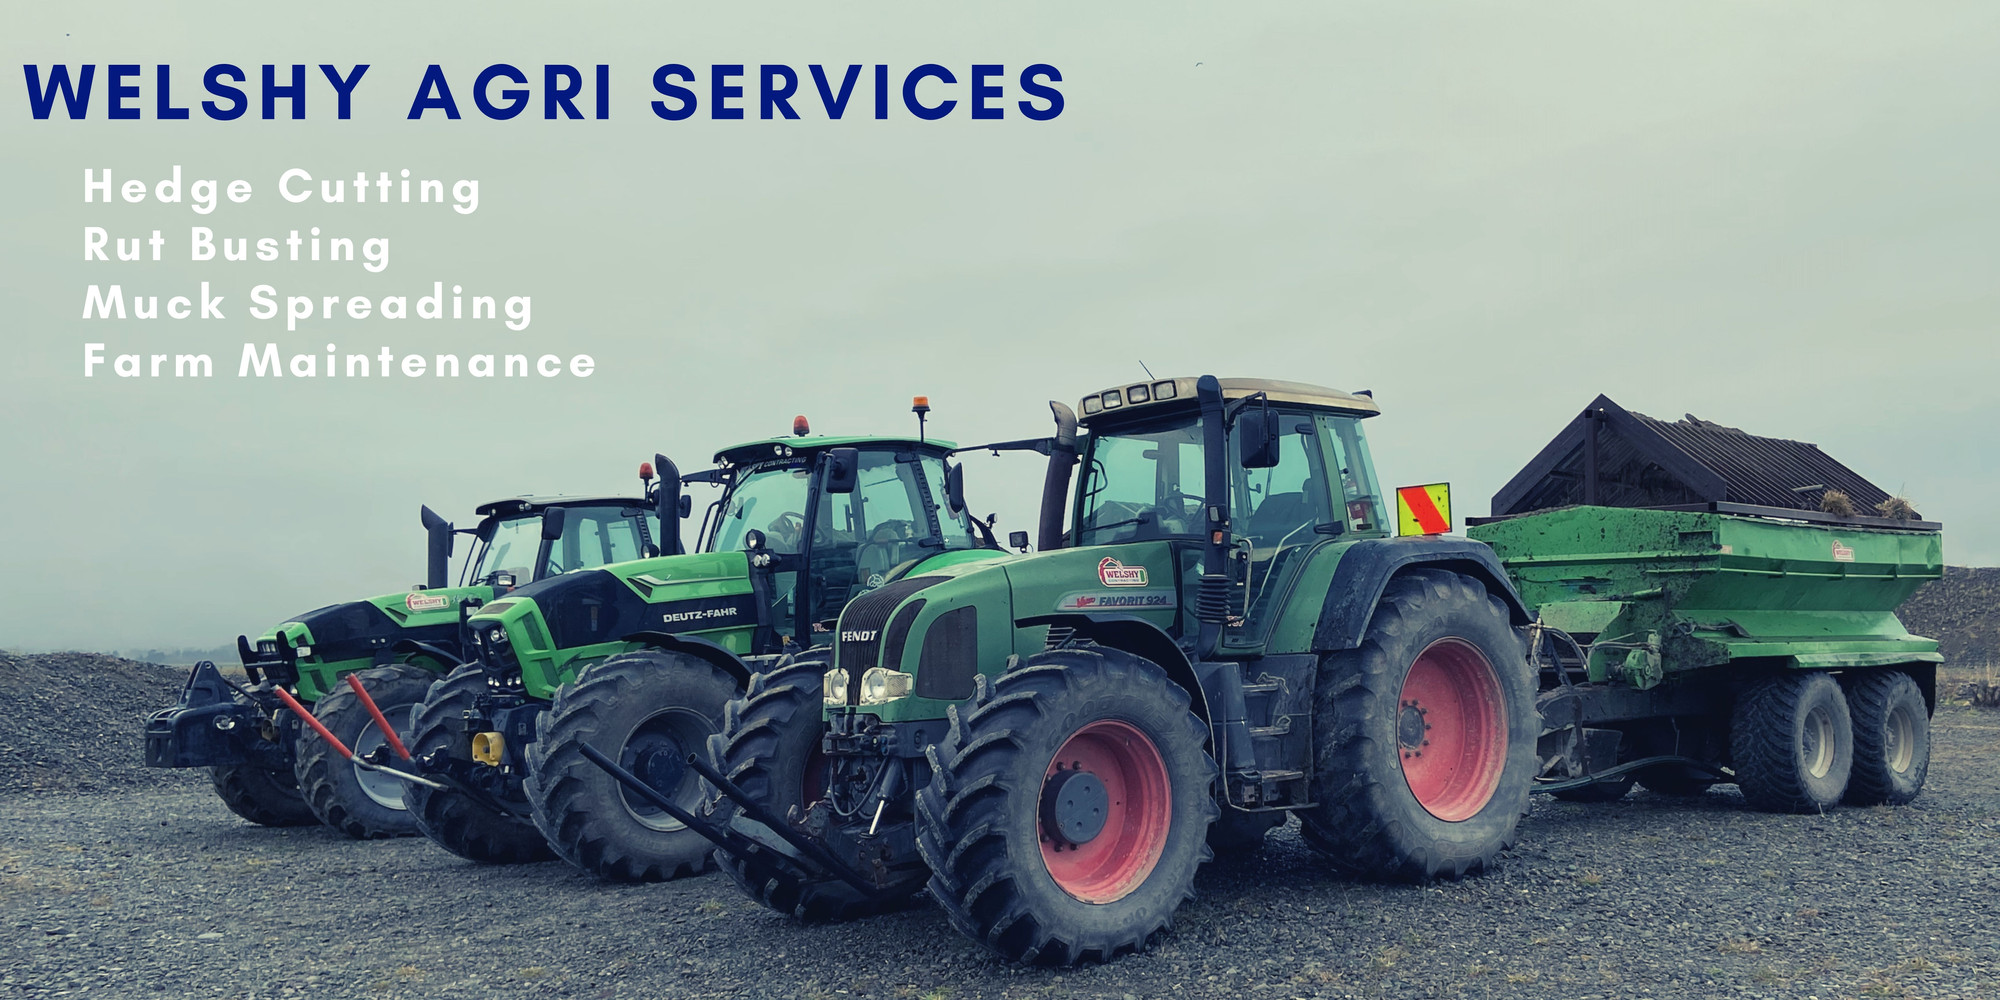 Welshy Agri Services